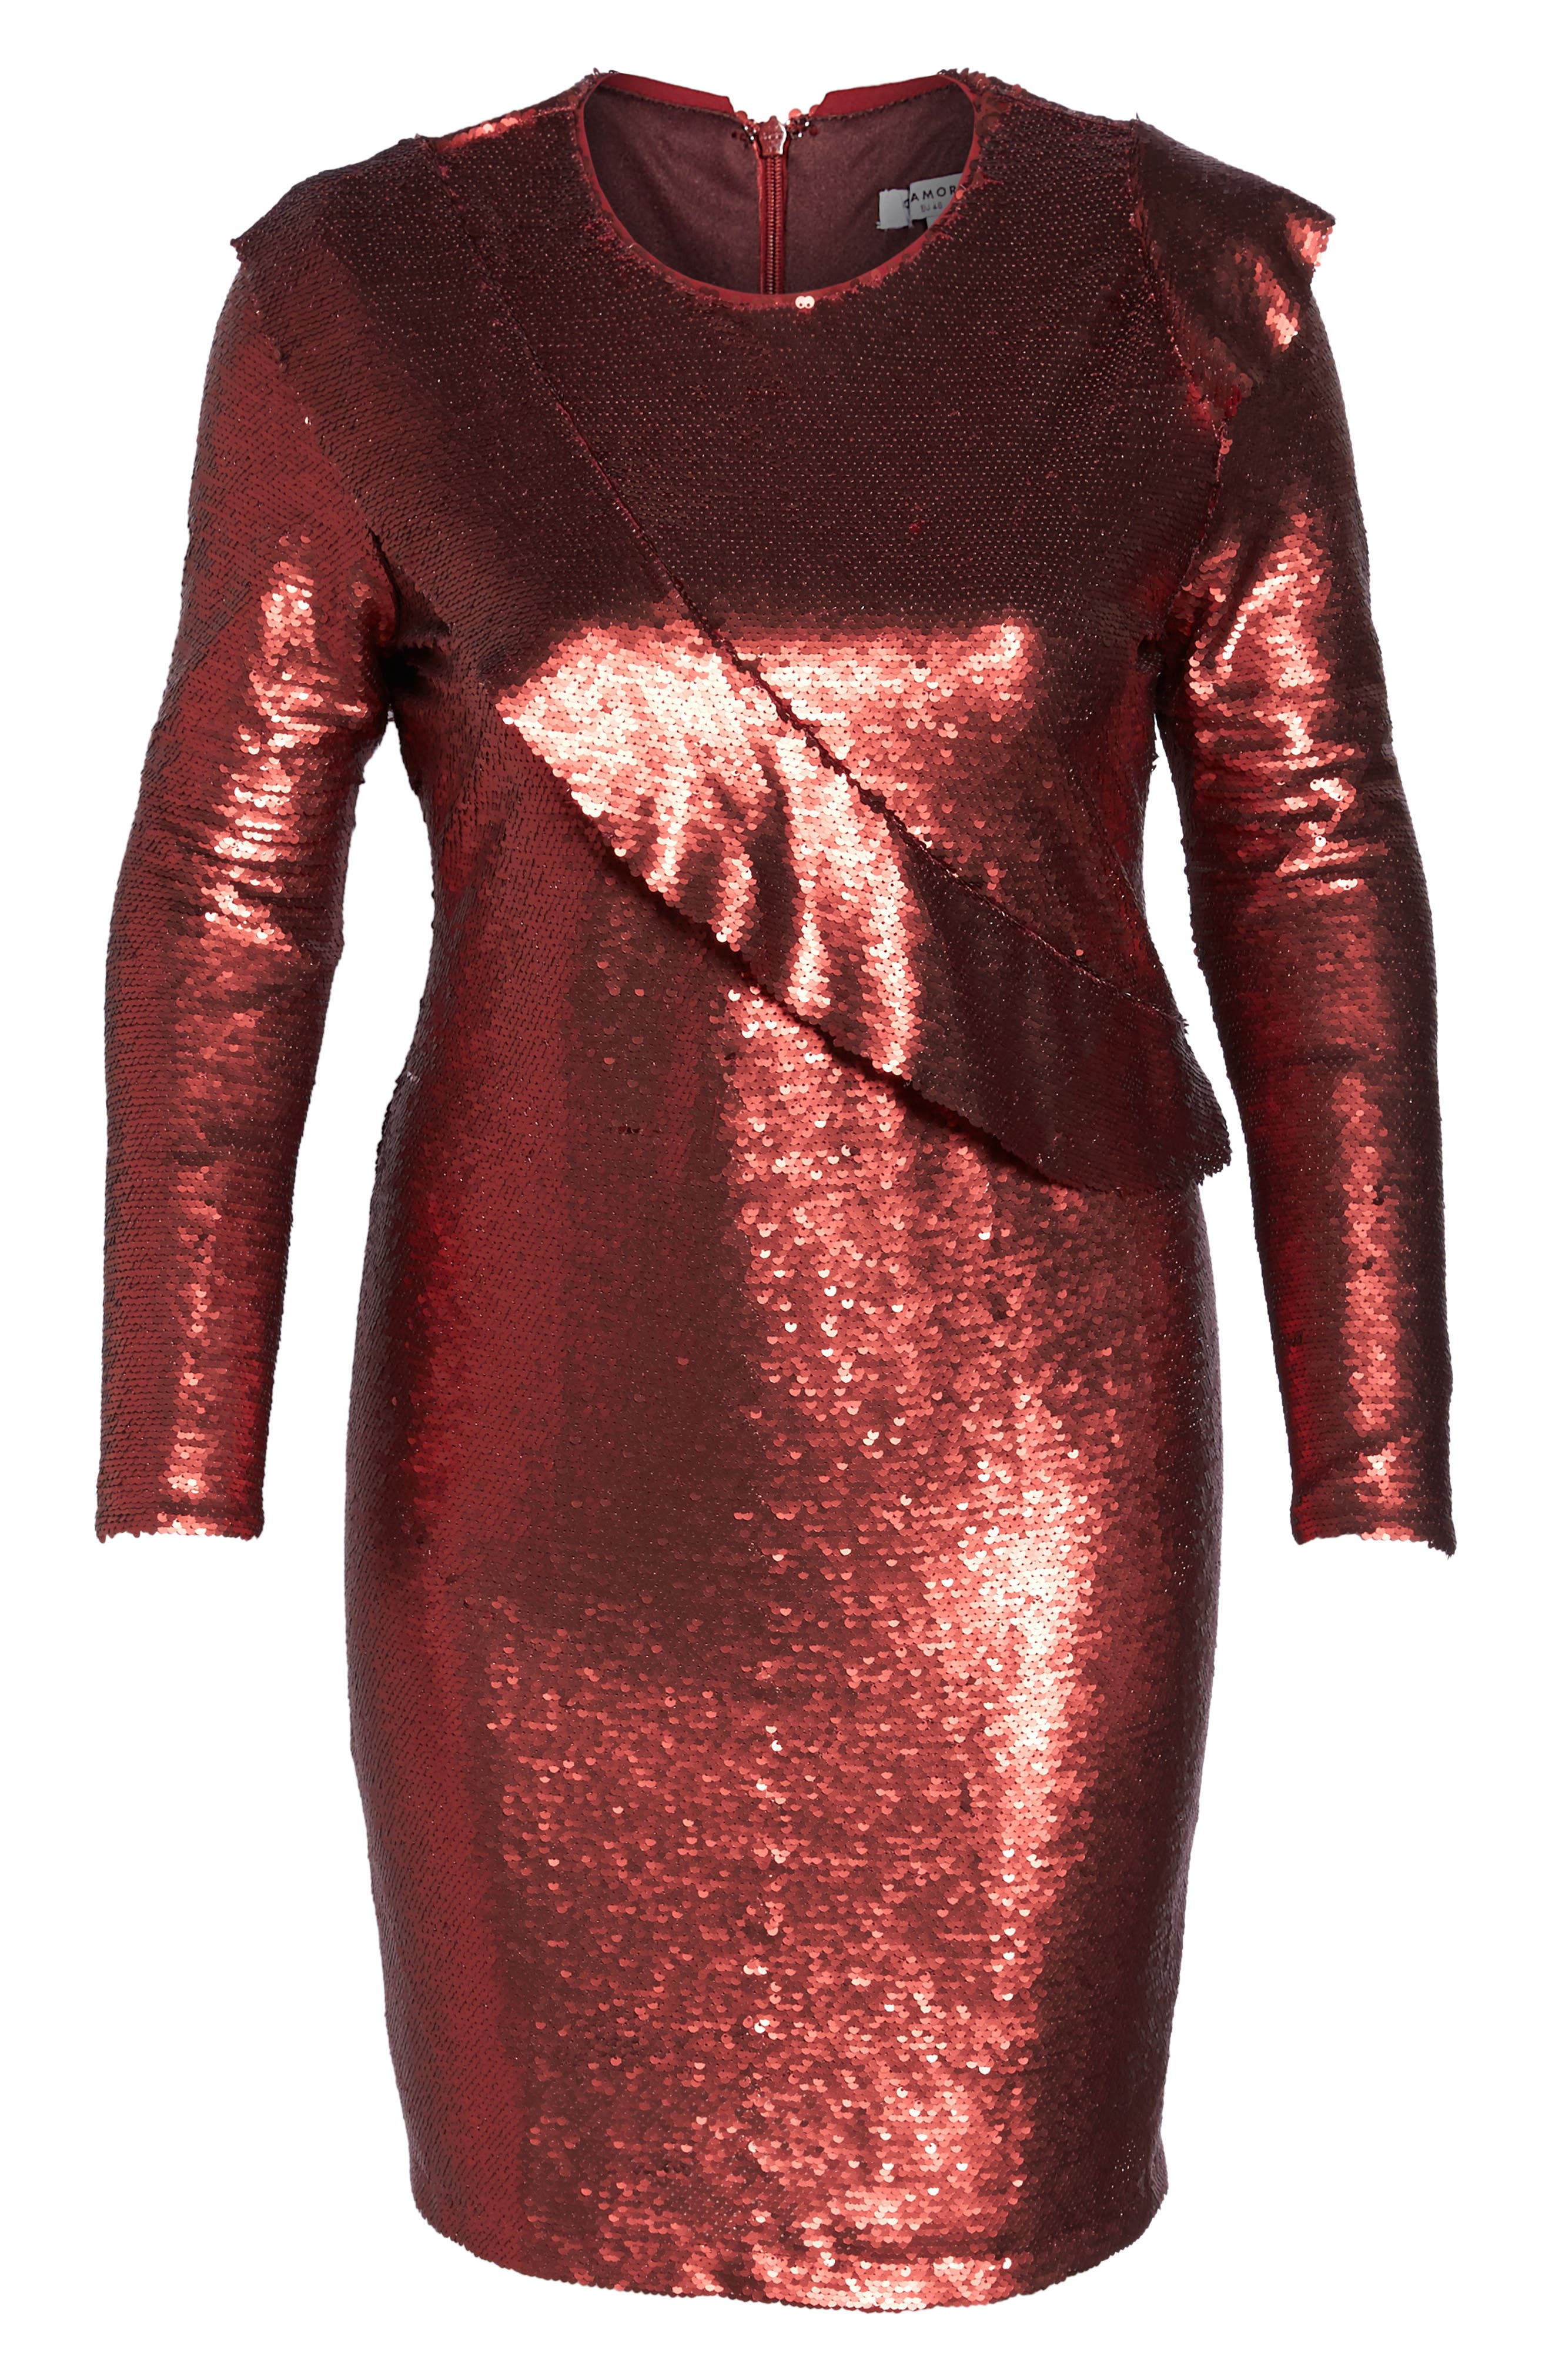 Sequin Ruffle Dress,                             Alternate thumbnail 6, color,                             600